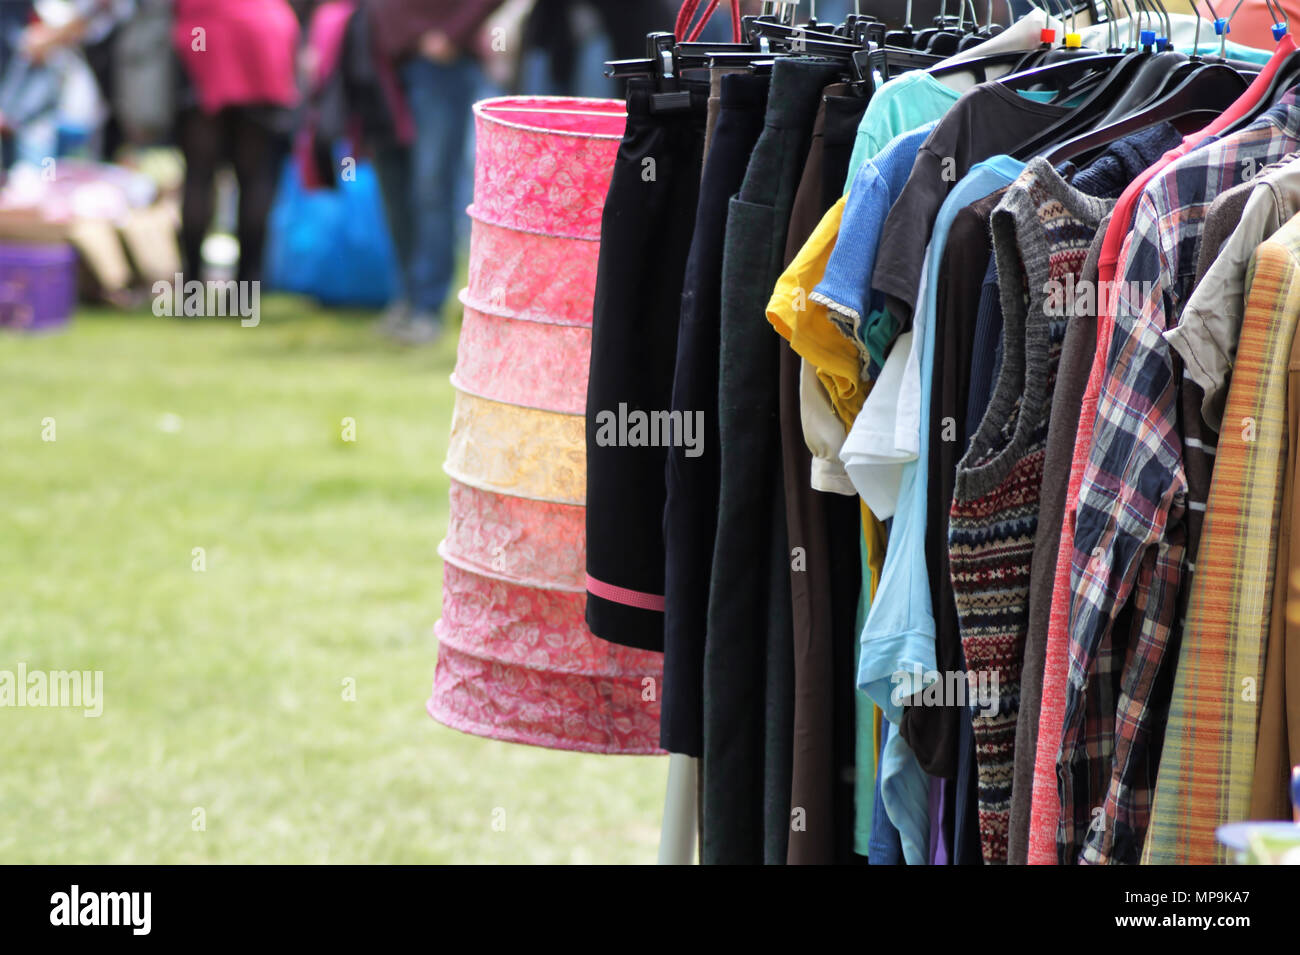 6df296d9fcf084 Kleider Stock Photos   Kleider Stock Images - Alamy